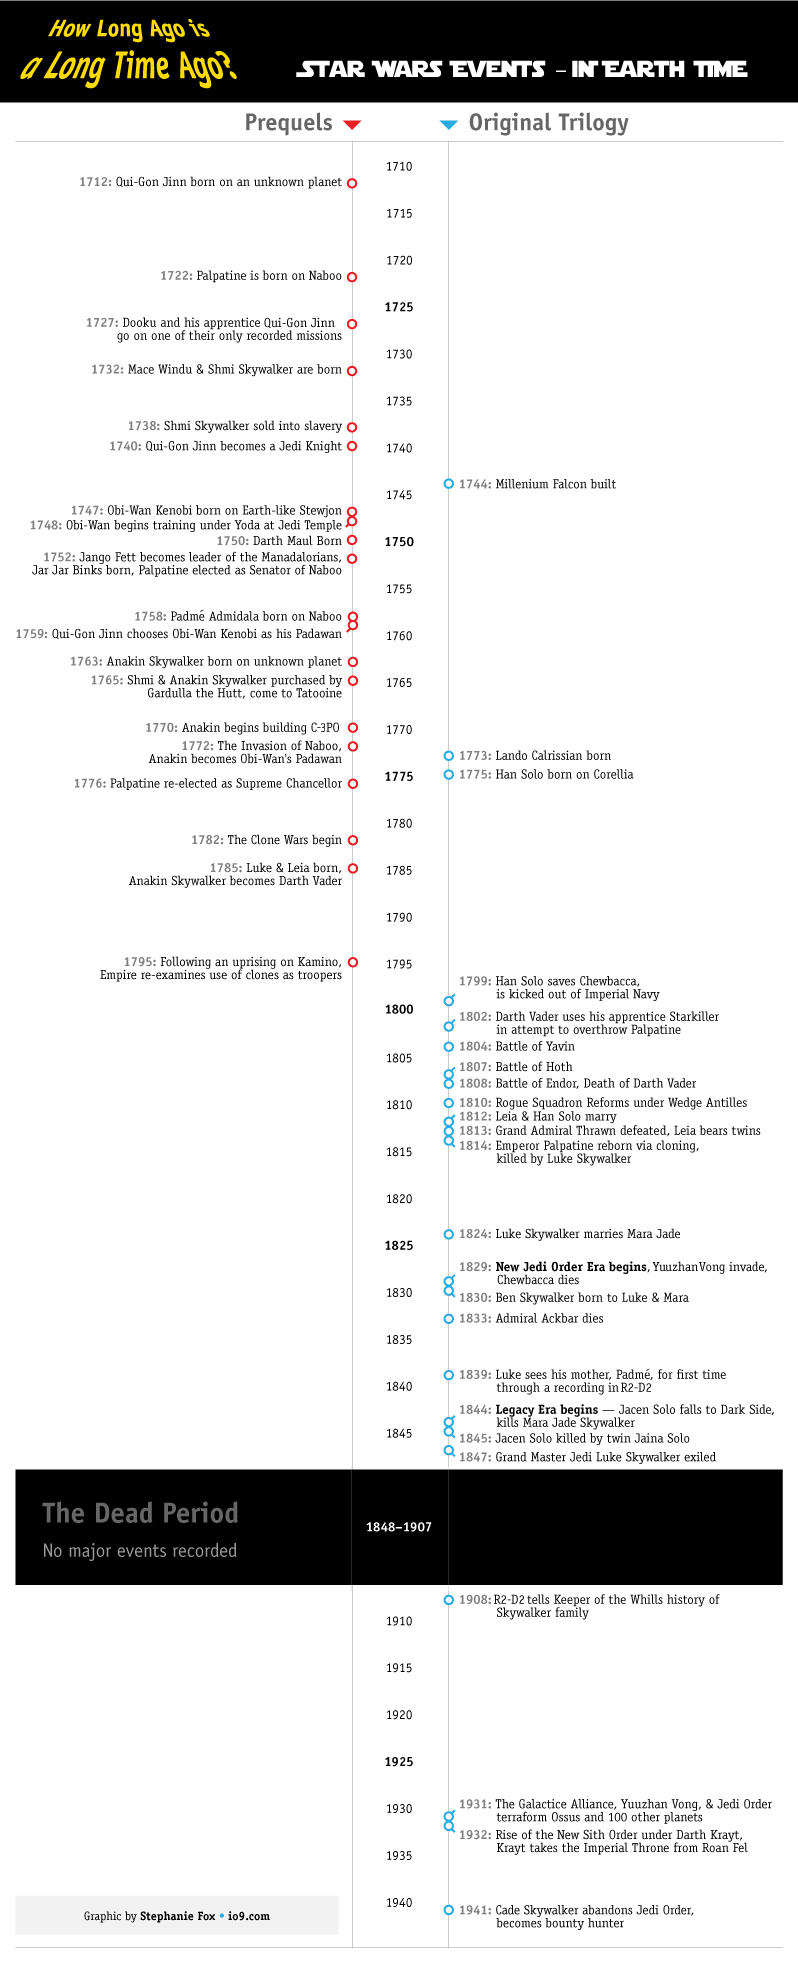 a chart that explains how long ago star wars actually took place